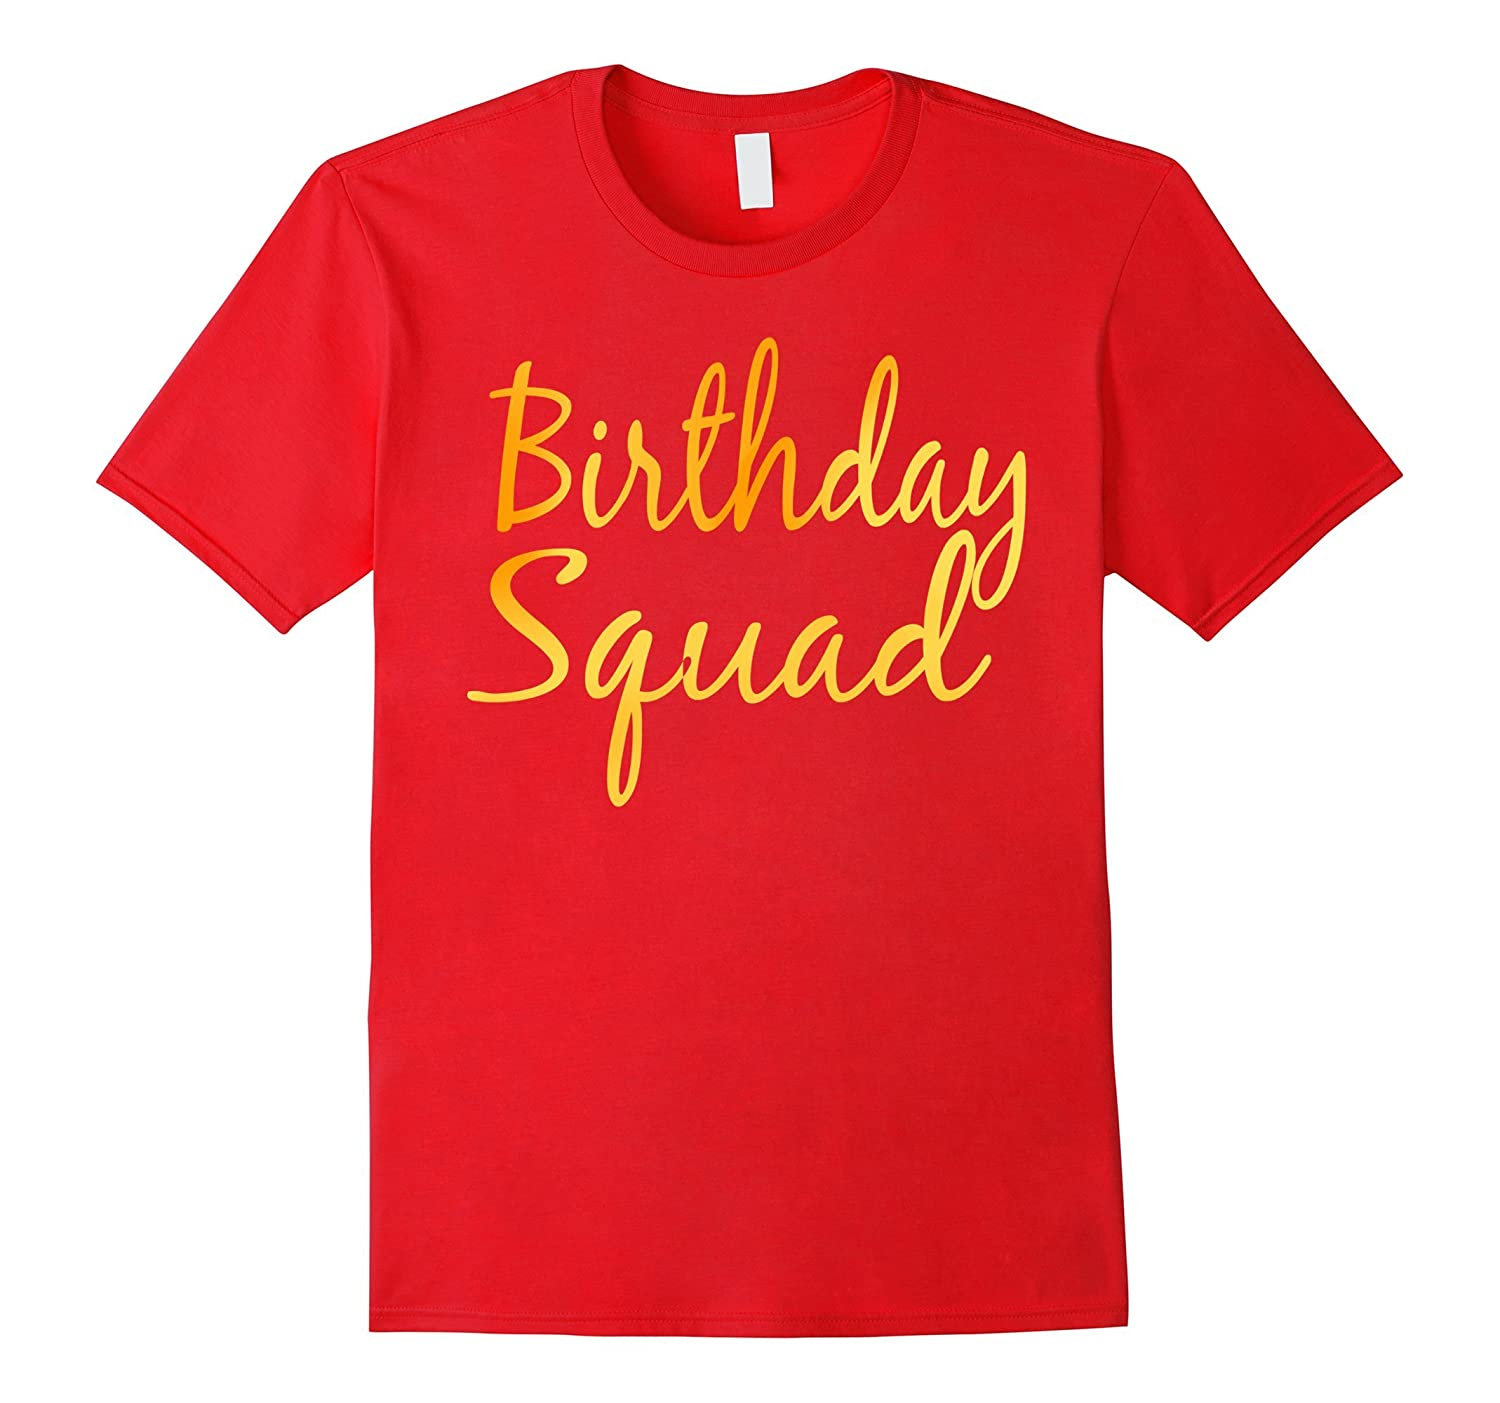 Birthday Squad T-Shirt Birthday Party Gift-ah my shirt one gift